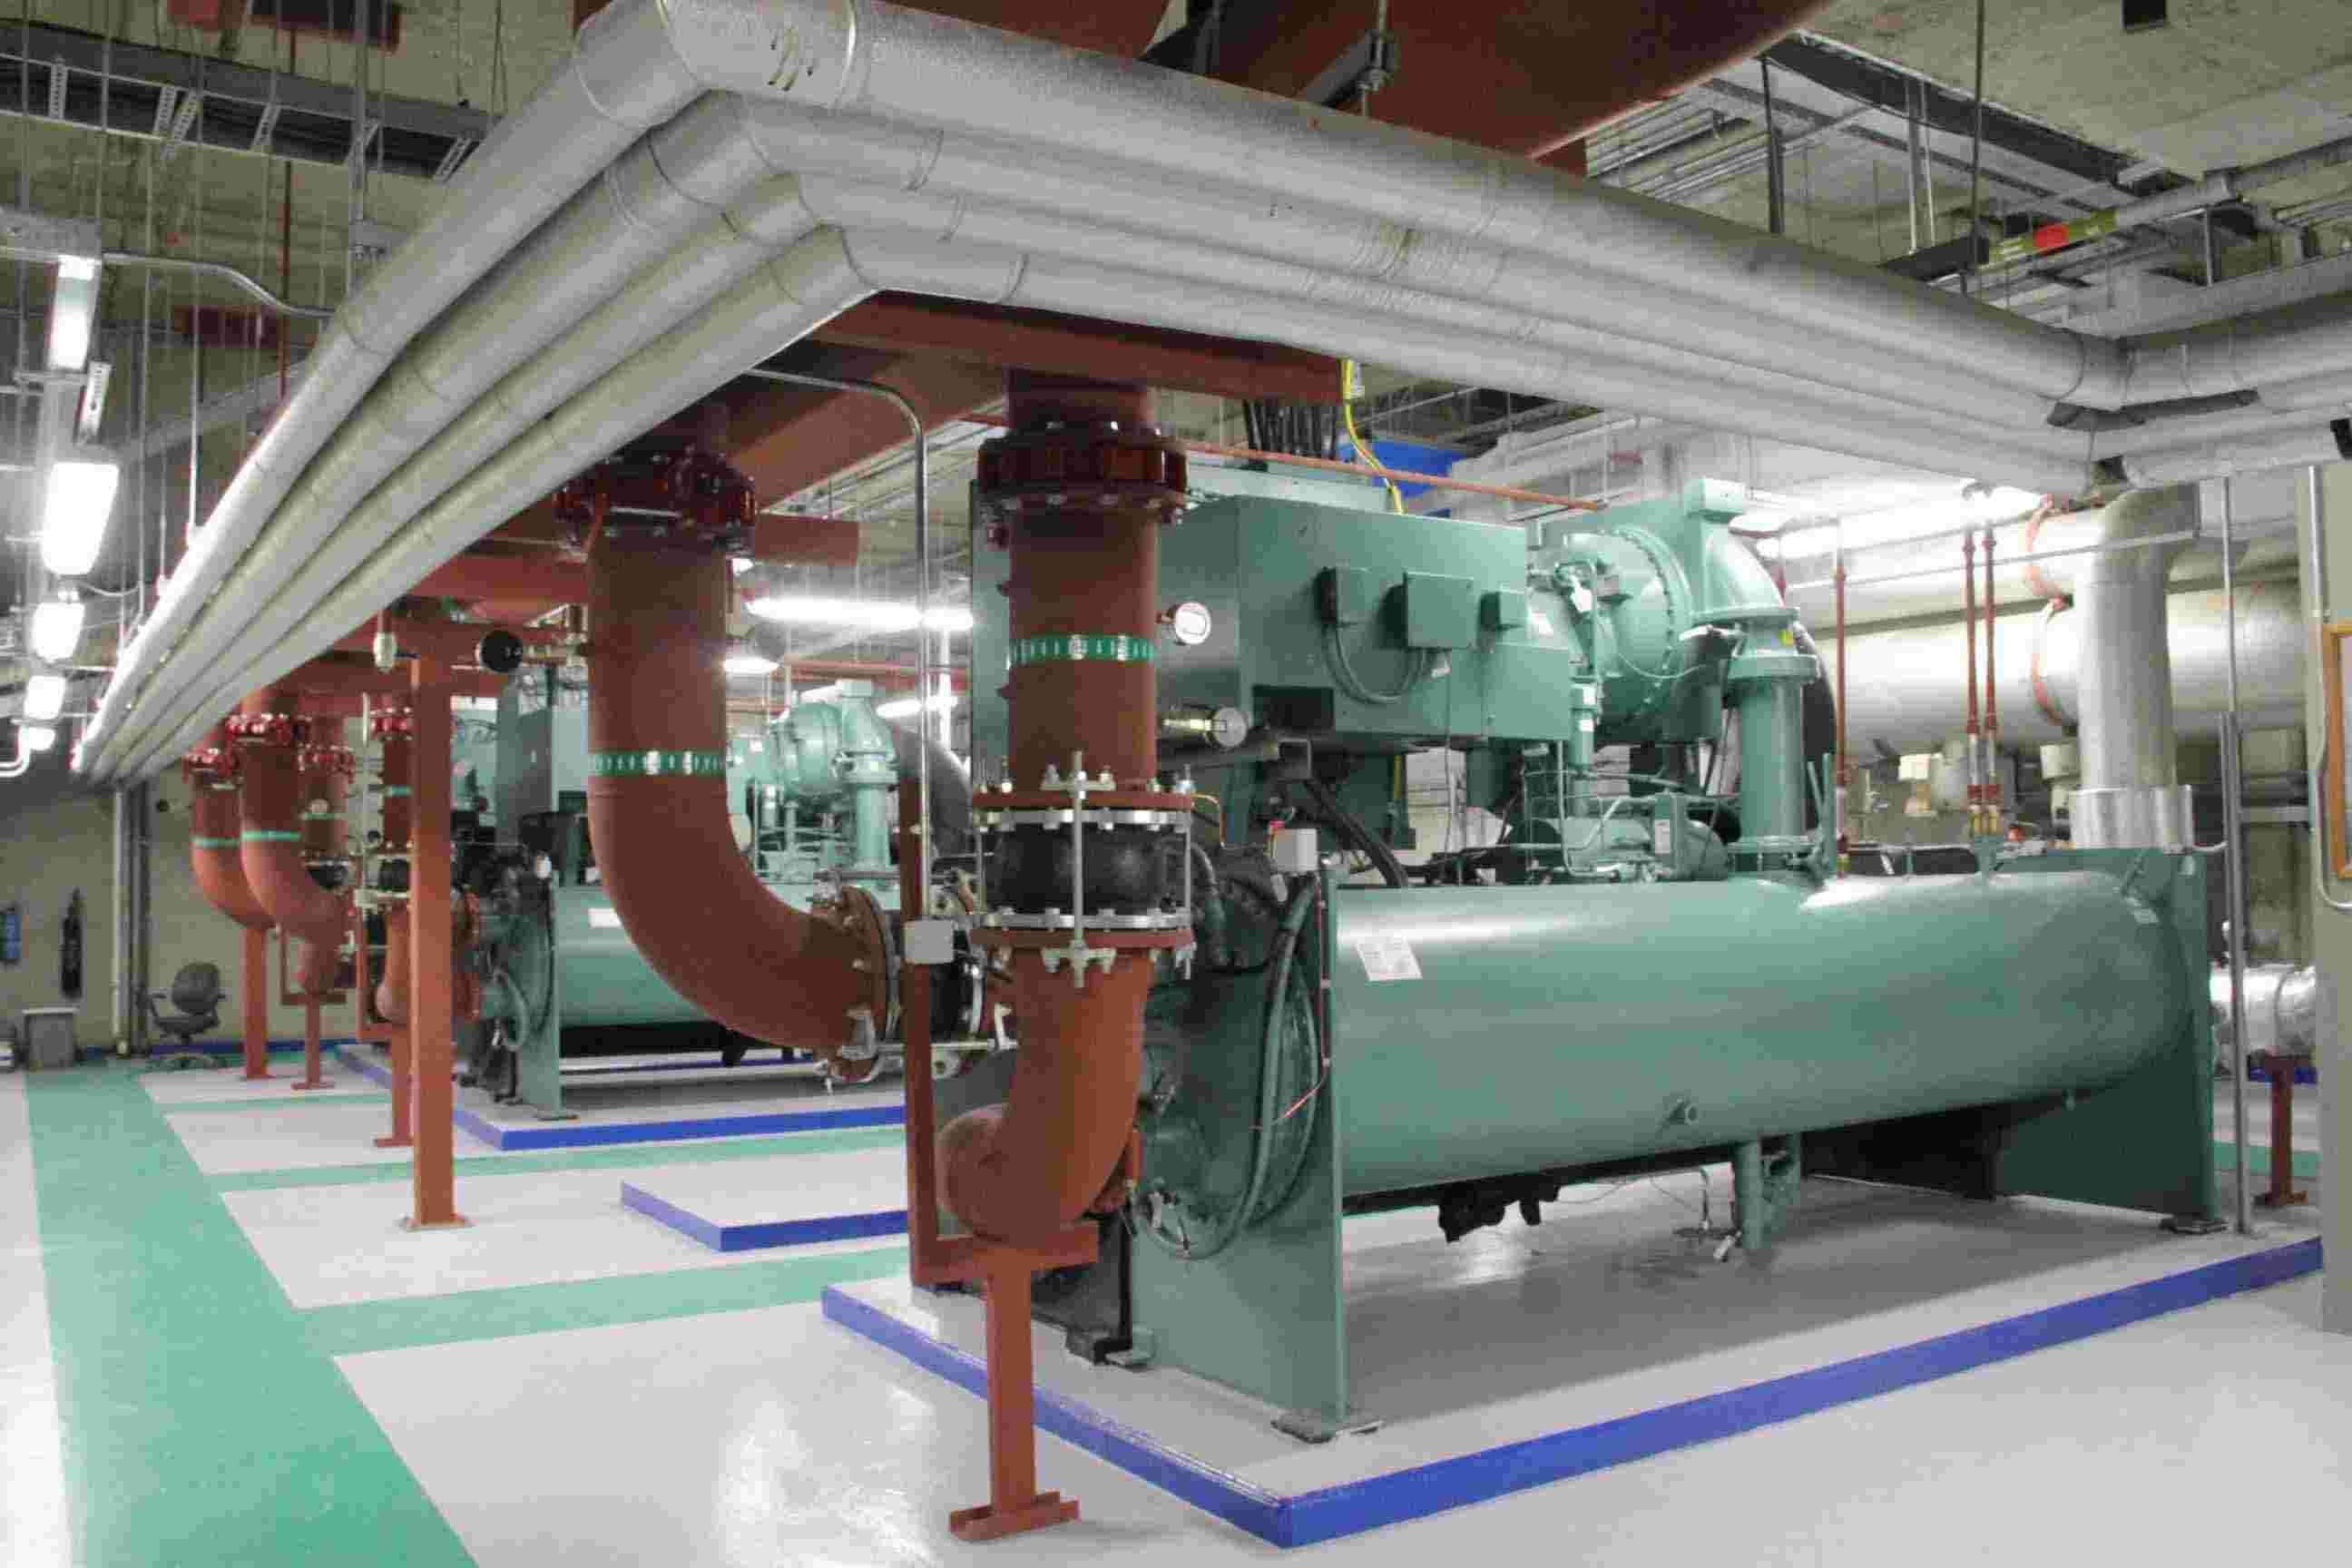 Dubai World Trade Center Chiller Plant Retrofit 2013 - Image3